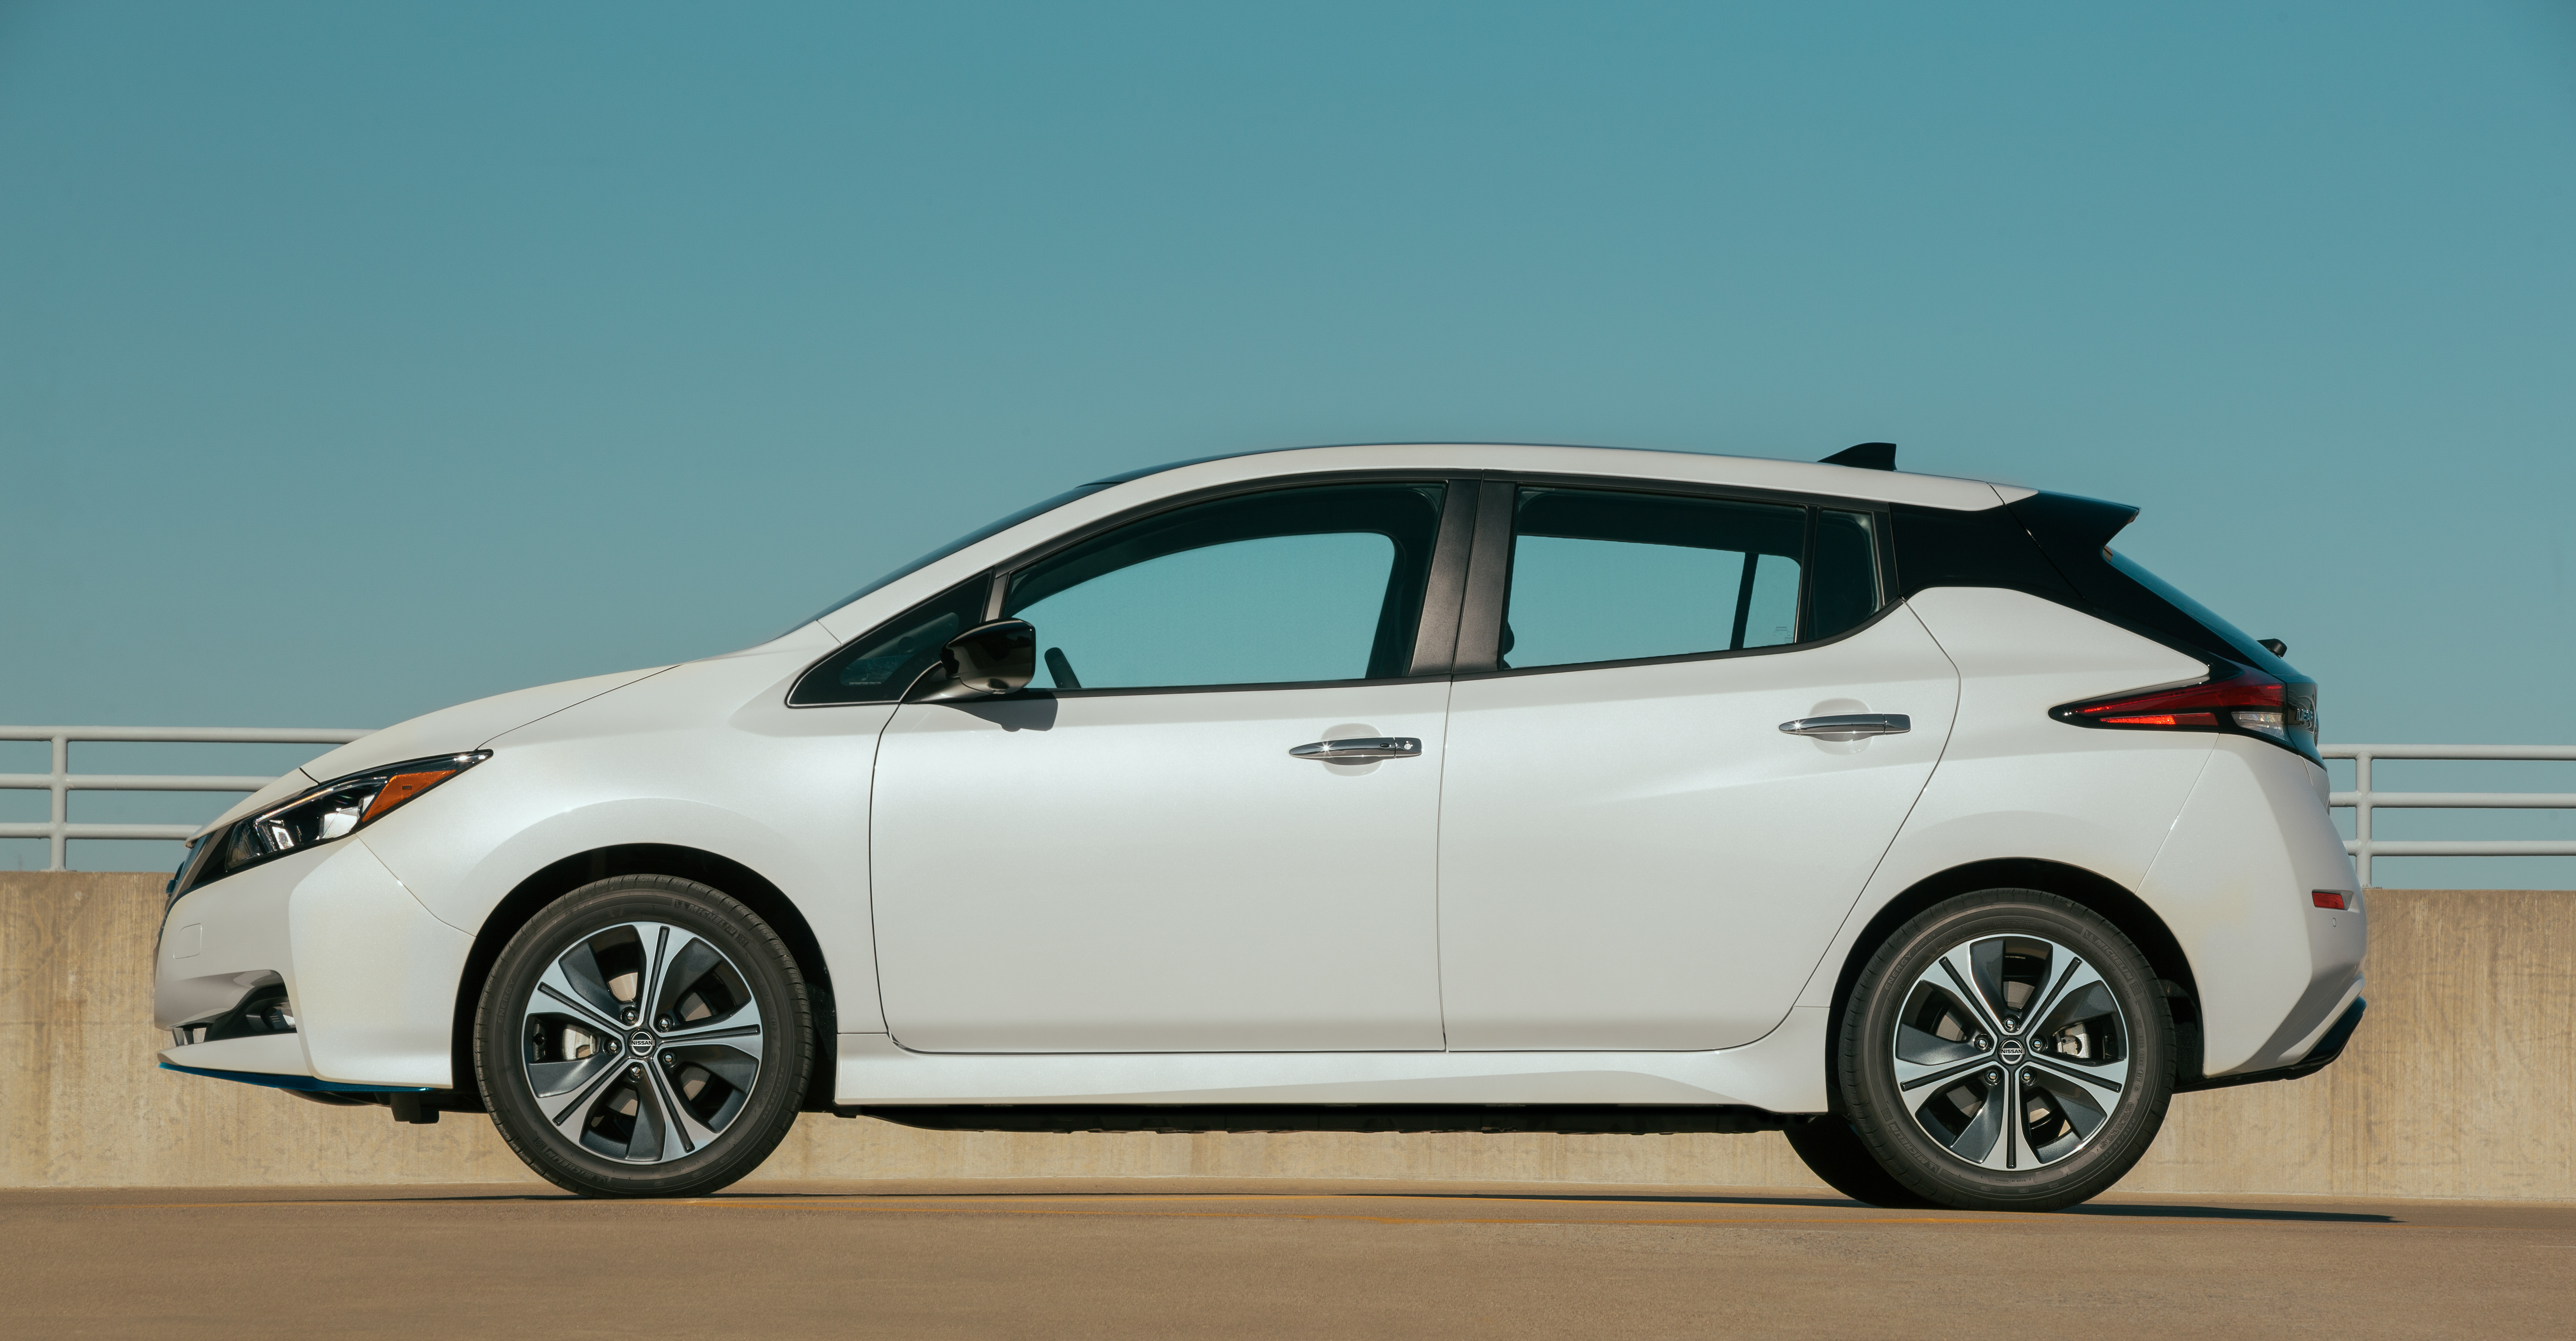 Nissan LEAF profile view